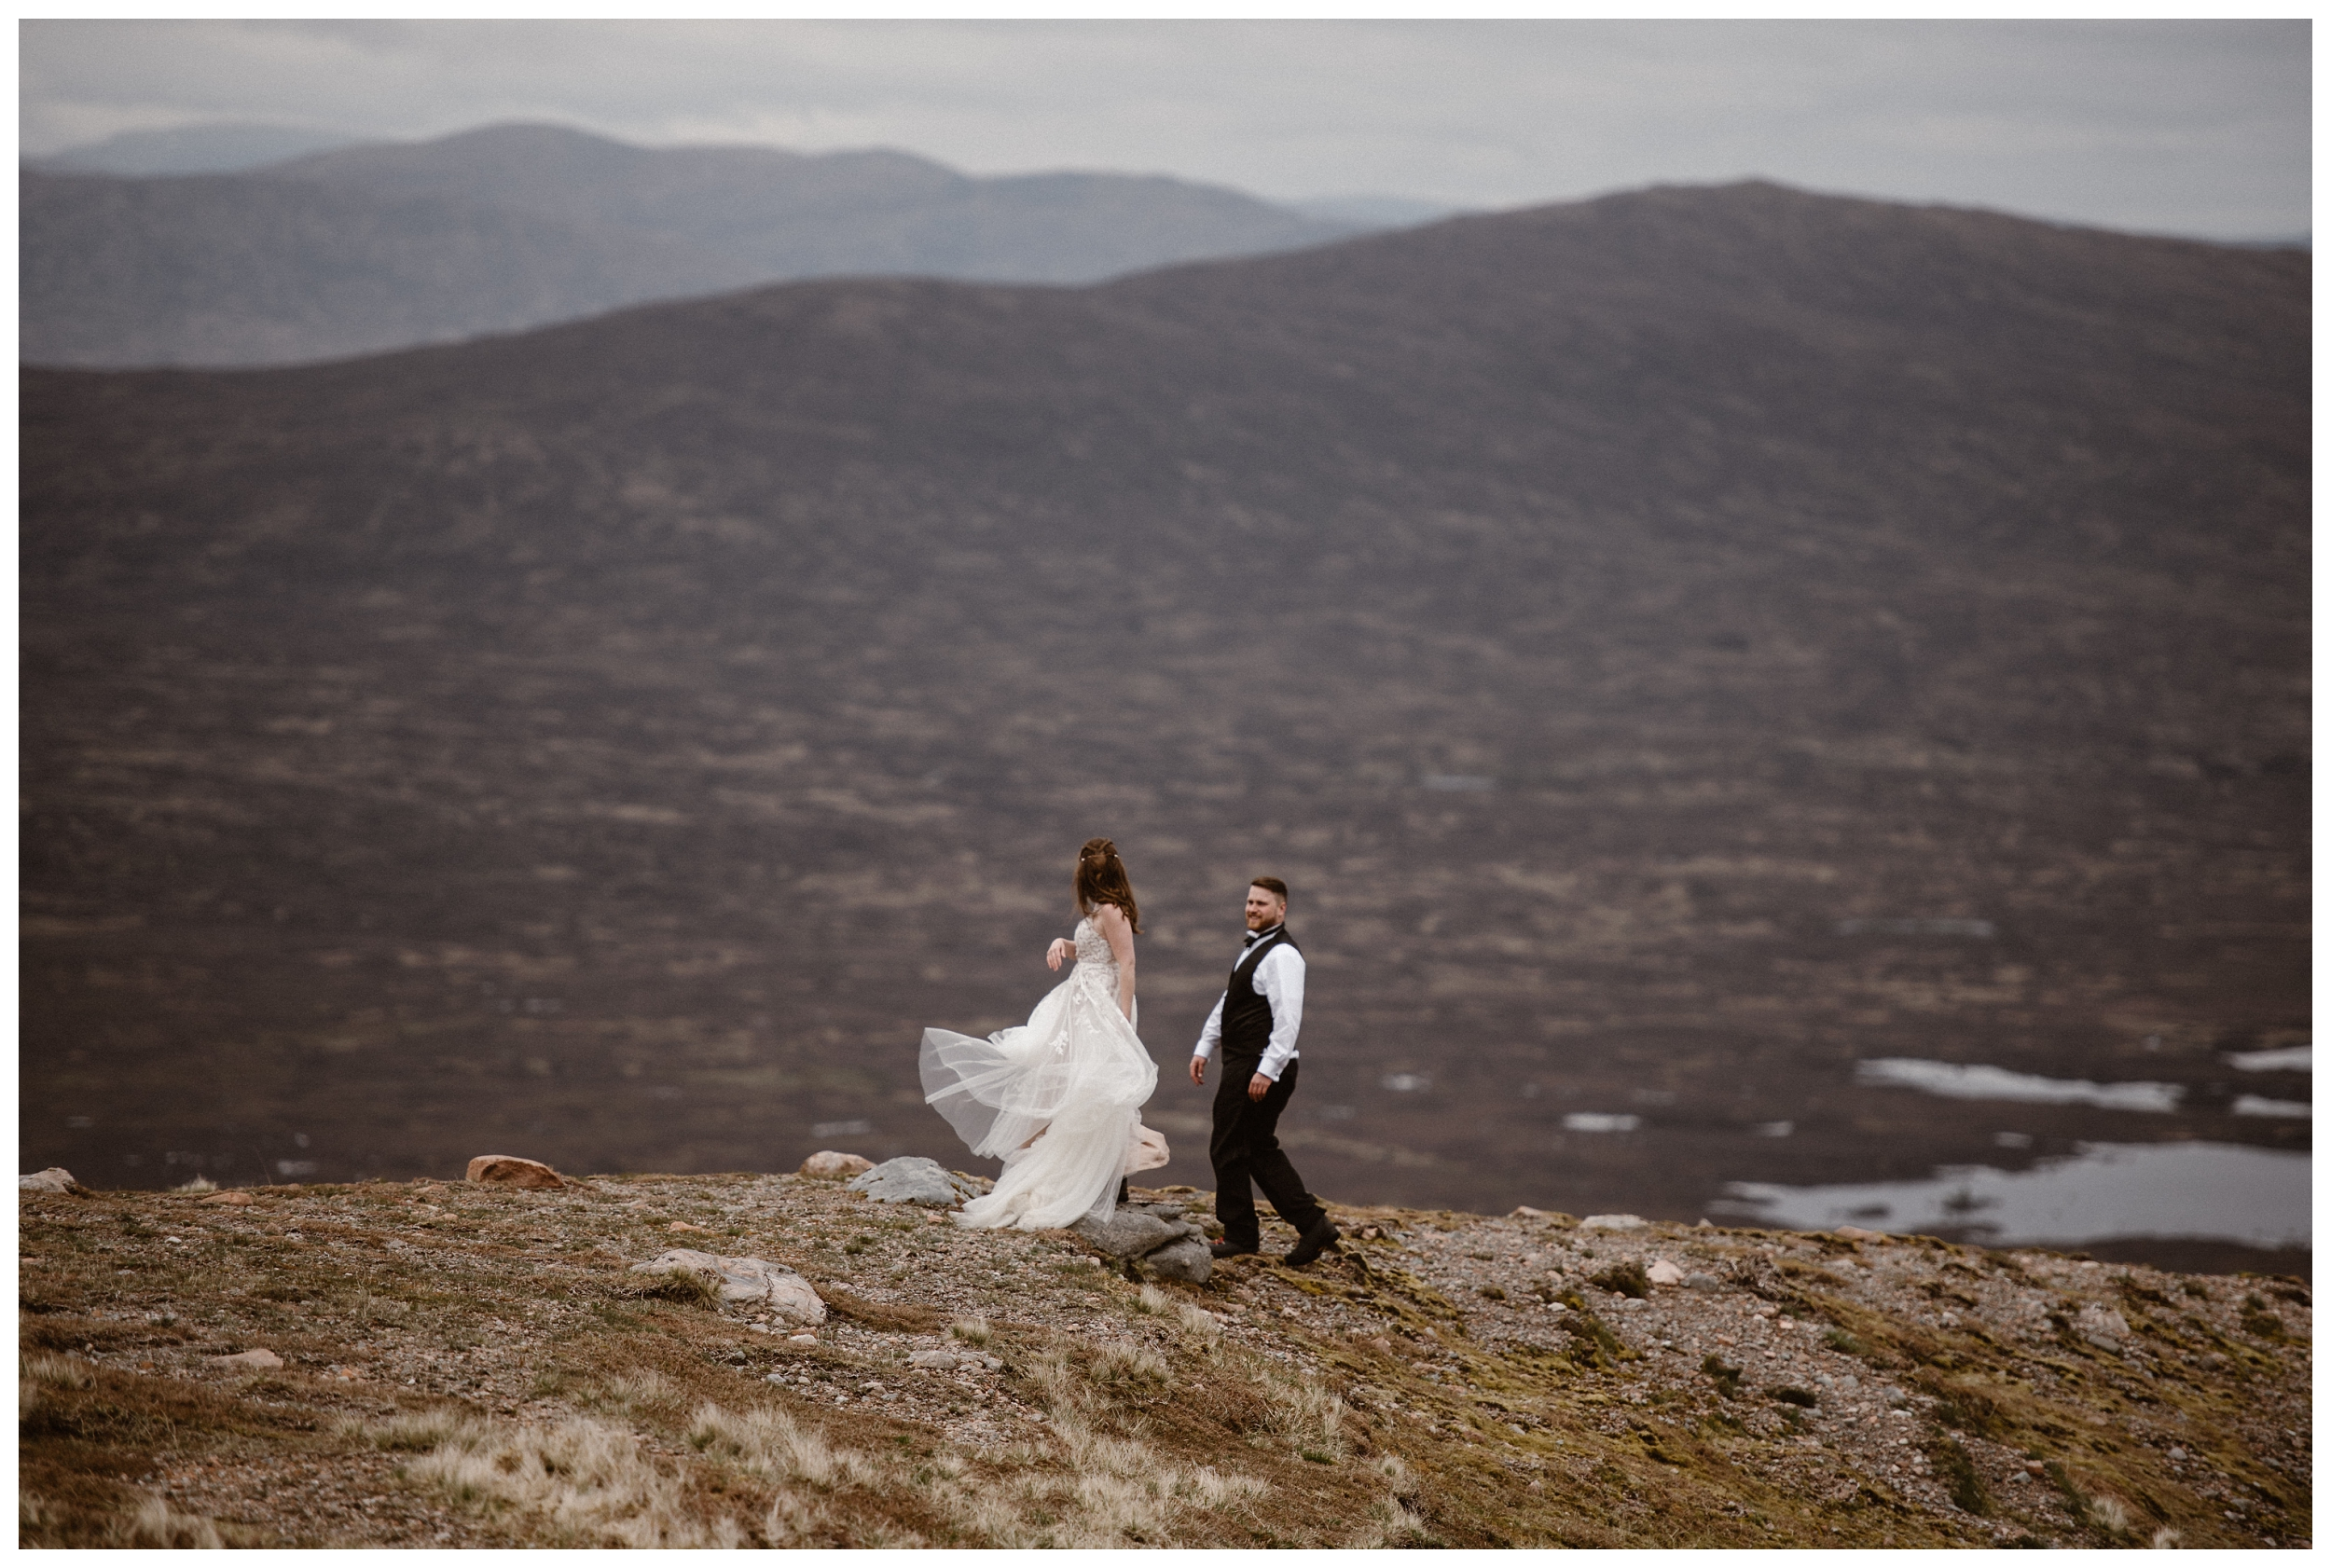 With the fog of early May in Scotland rolling around the hills behind them, Elissa and Daniel twirl in the Scottish Highlands. Photo by Maddie Mae, Adventure Instead.